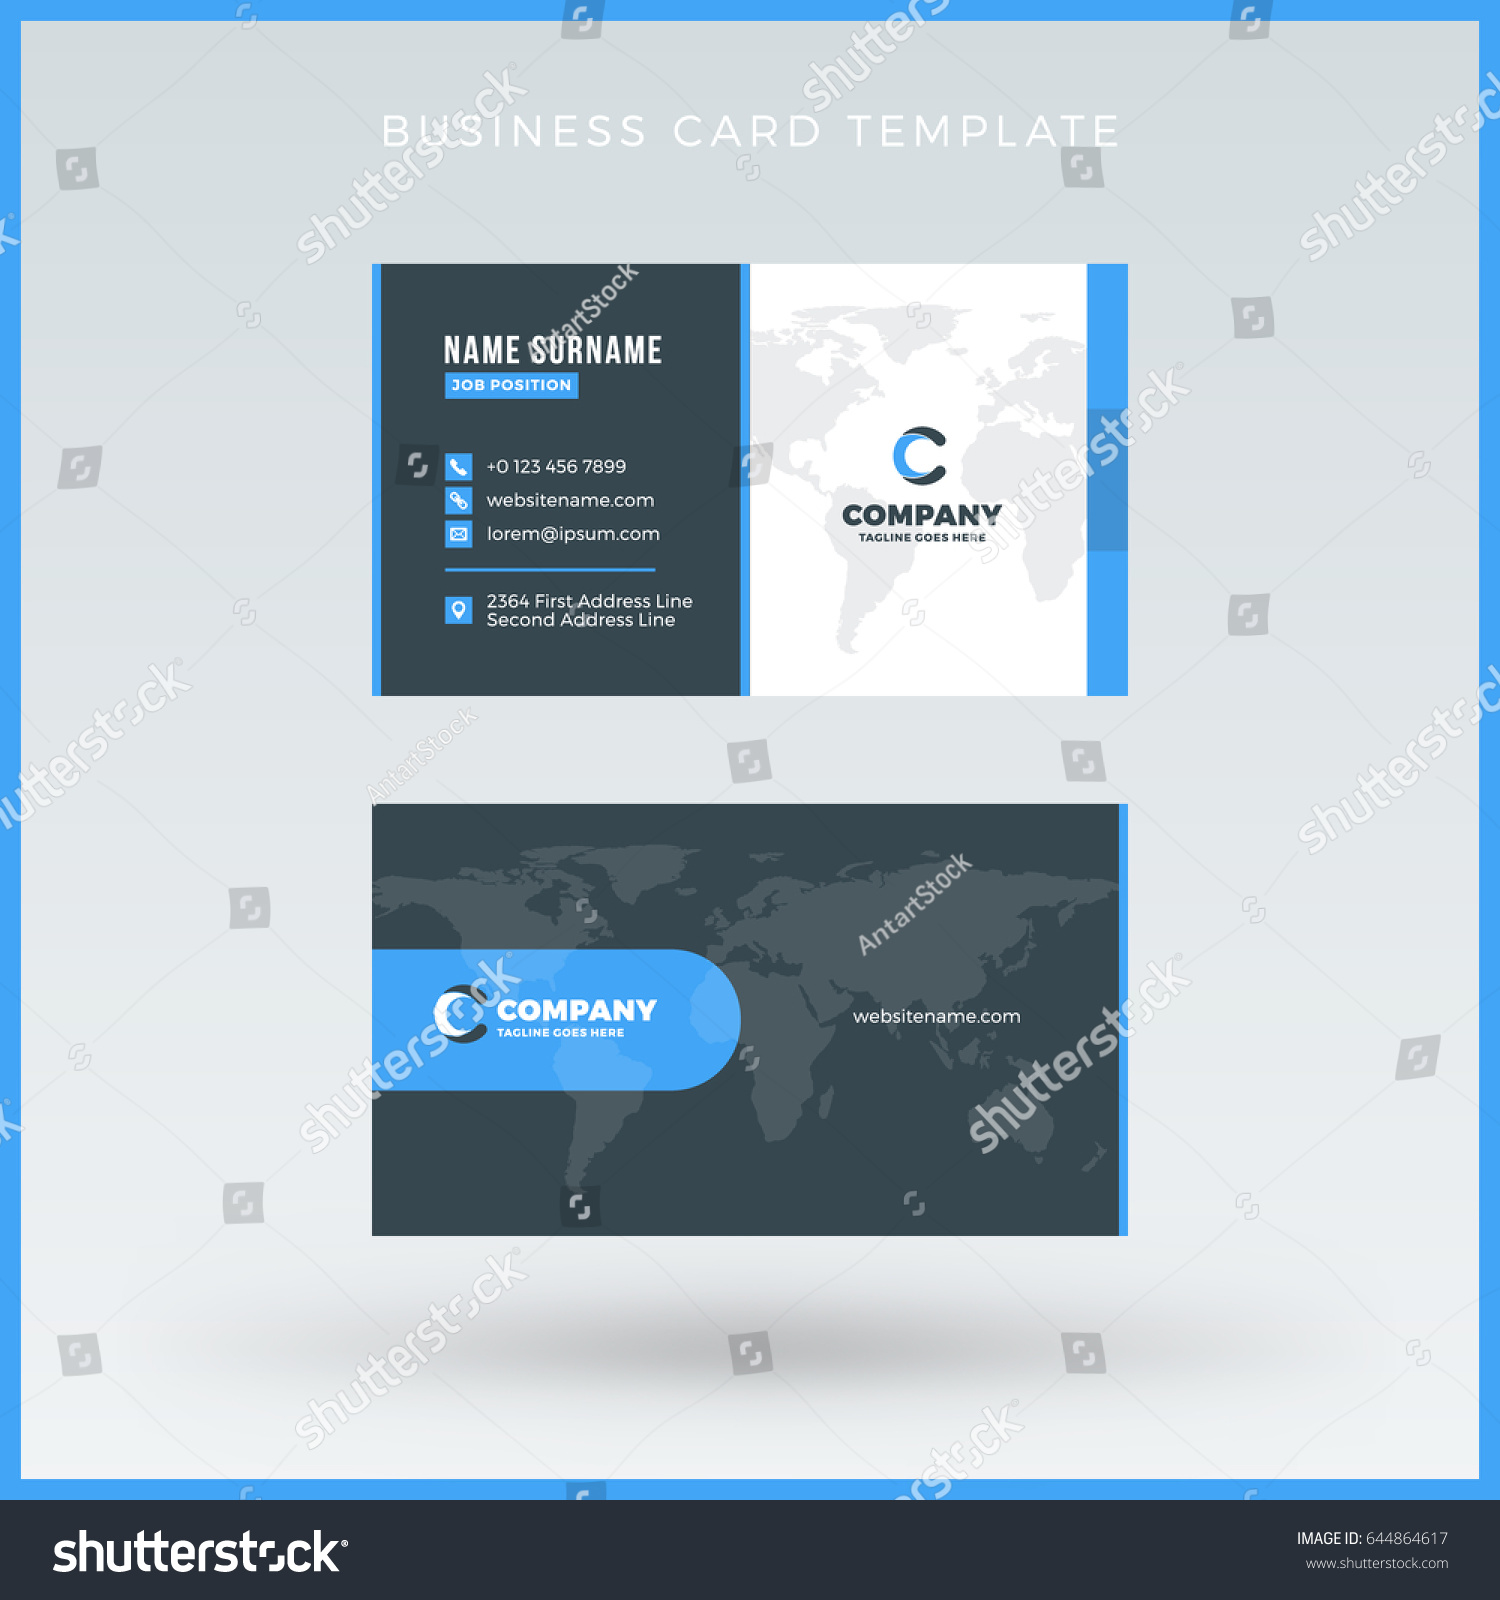 doublesided blue business card template vector stock vector 644864617 shutterstock. Black Bedroom Furniture Sets. Home Design Ideas